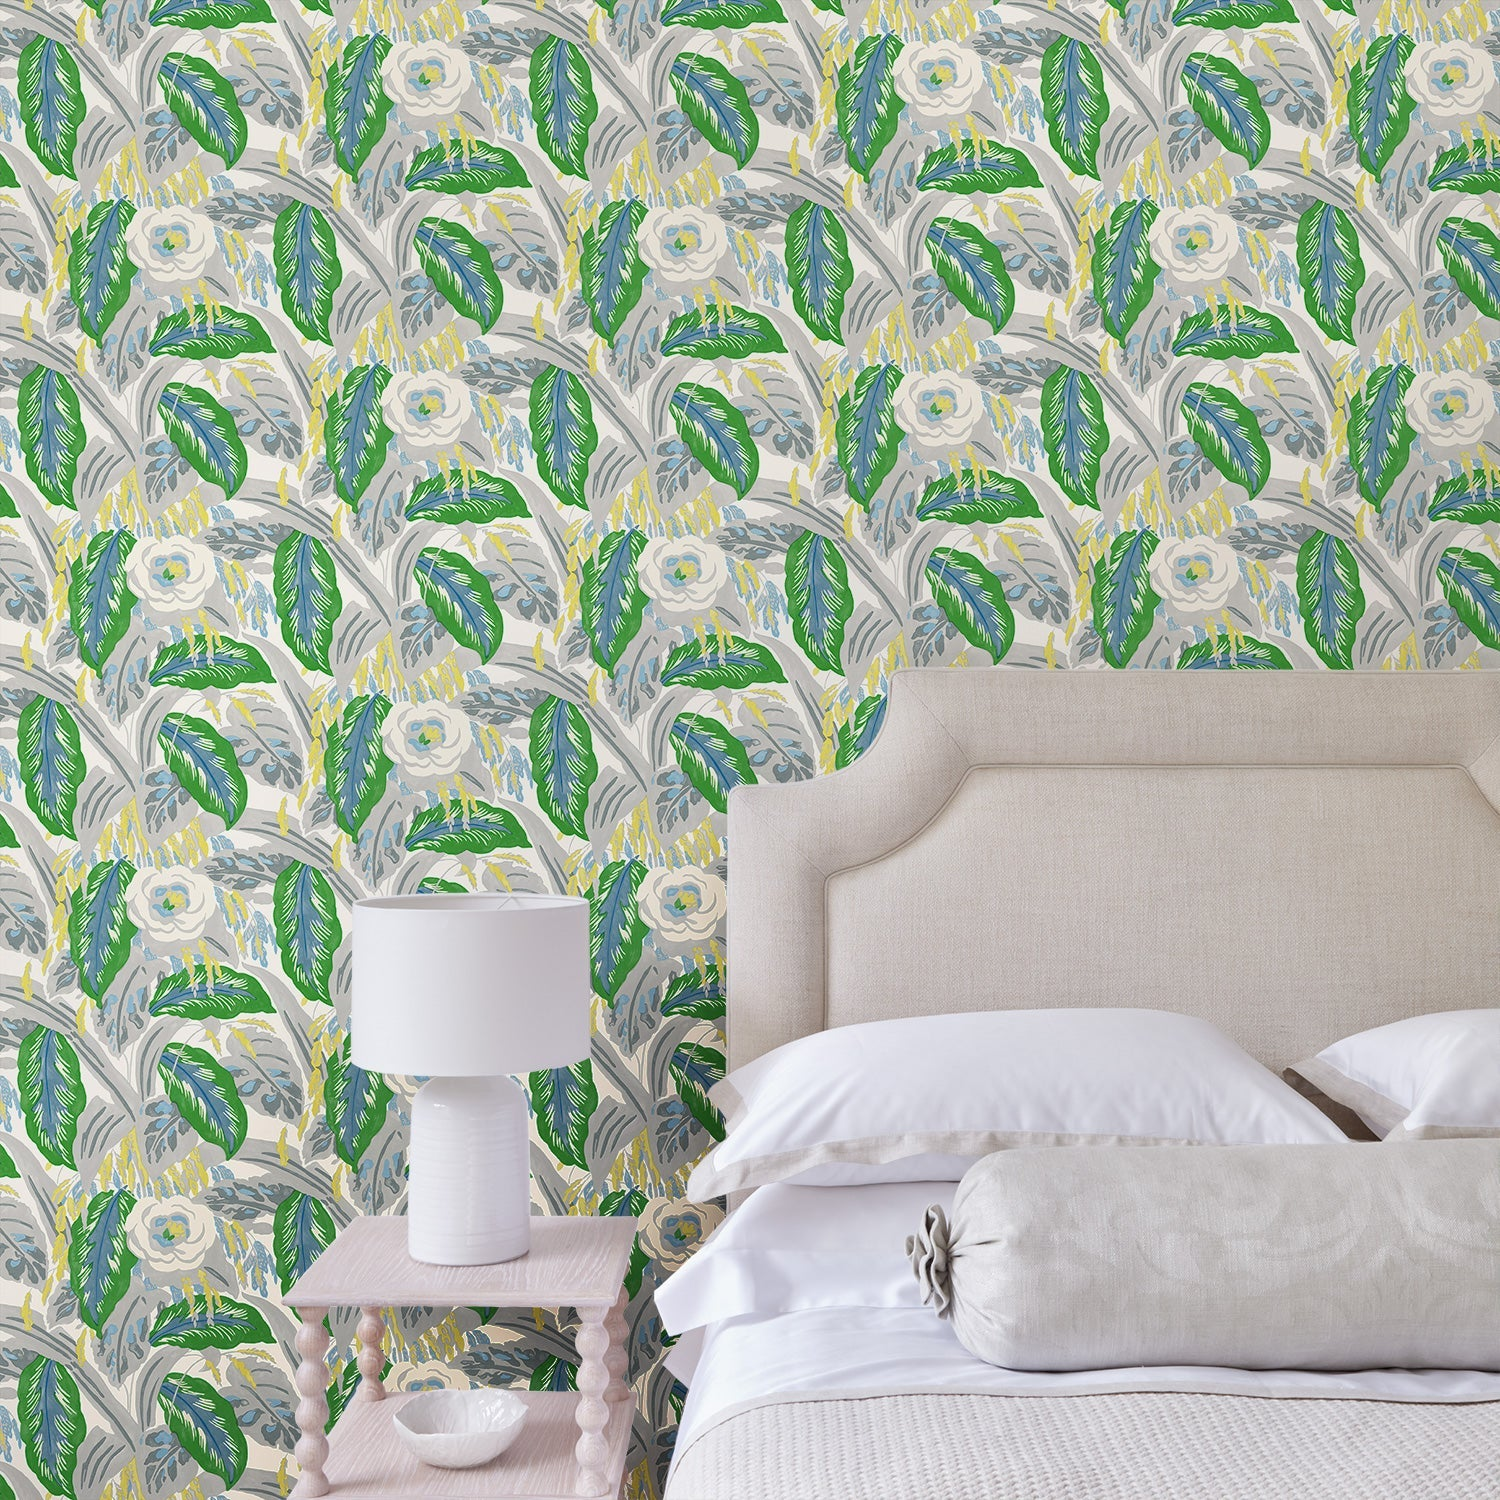 Bedroom featuring a luxury designer wallpaper with a green floral design